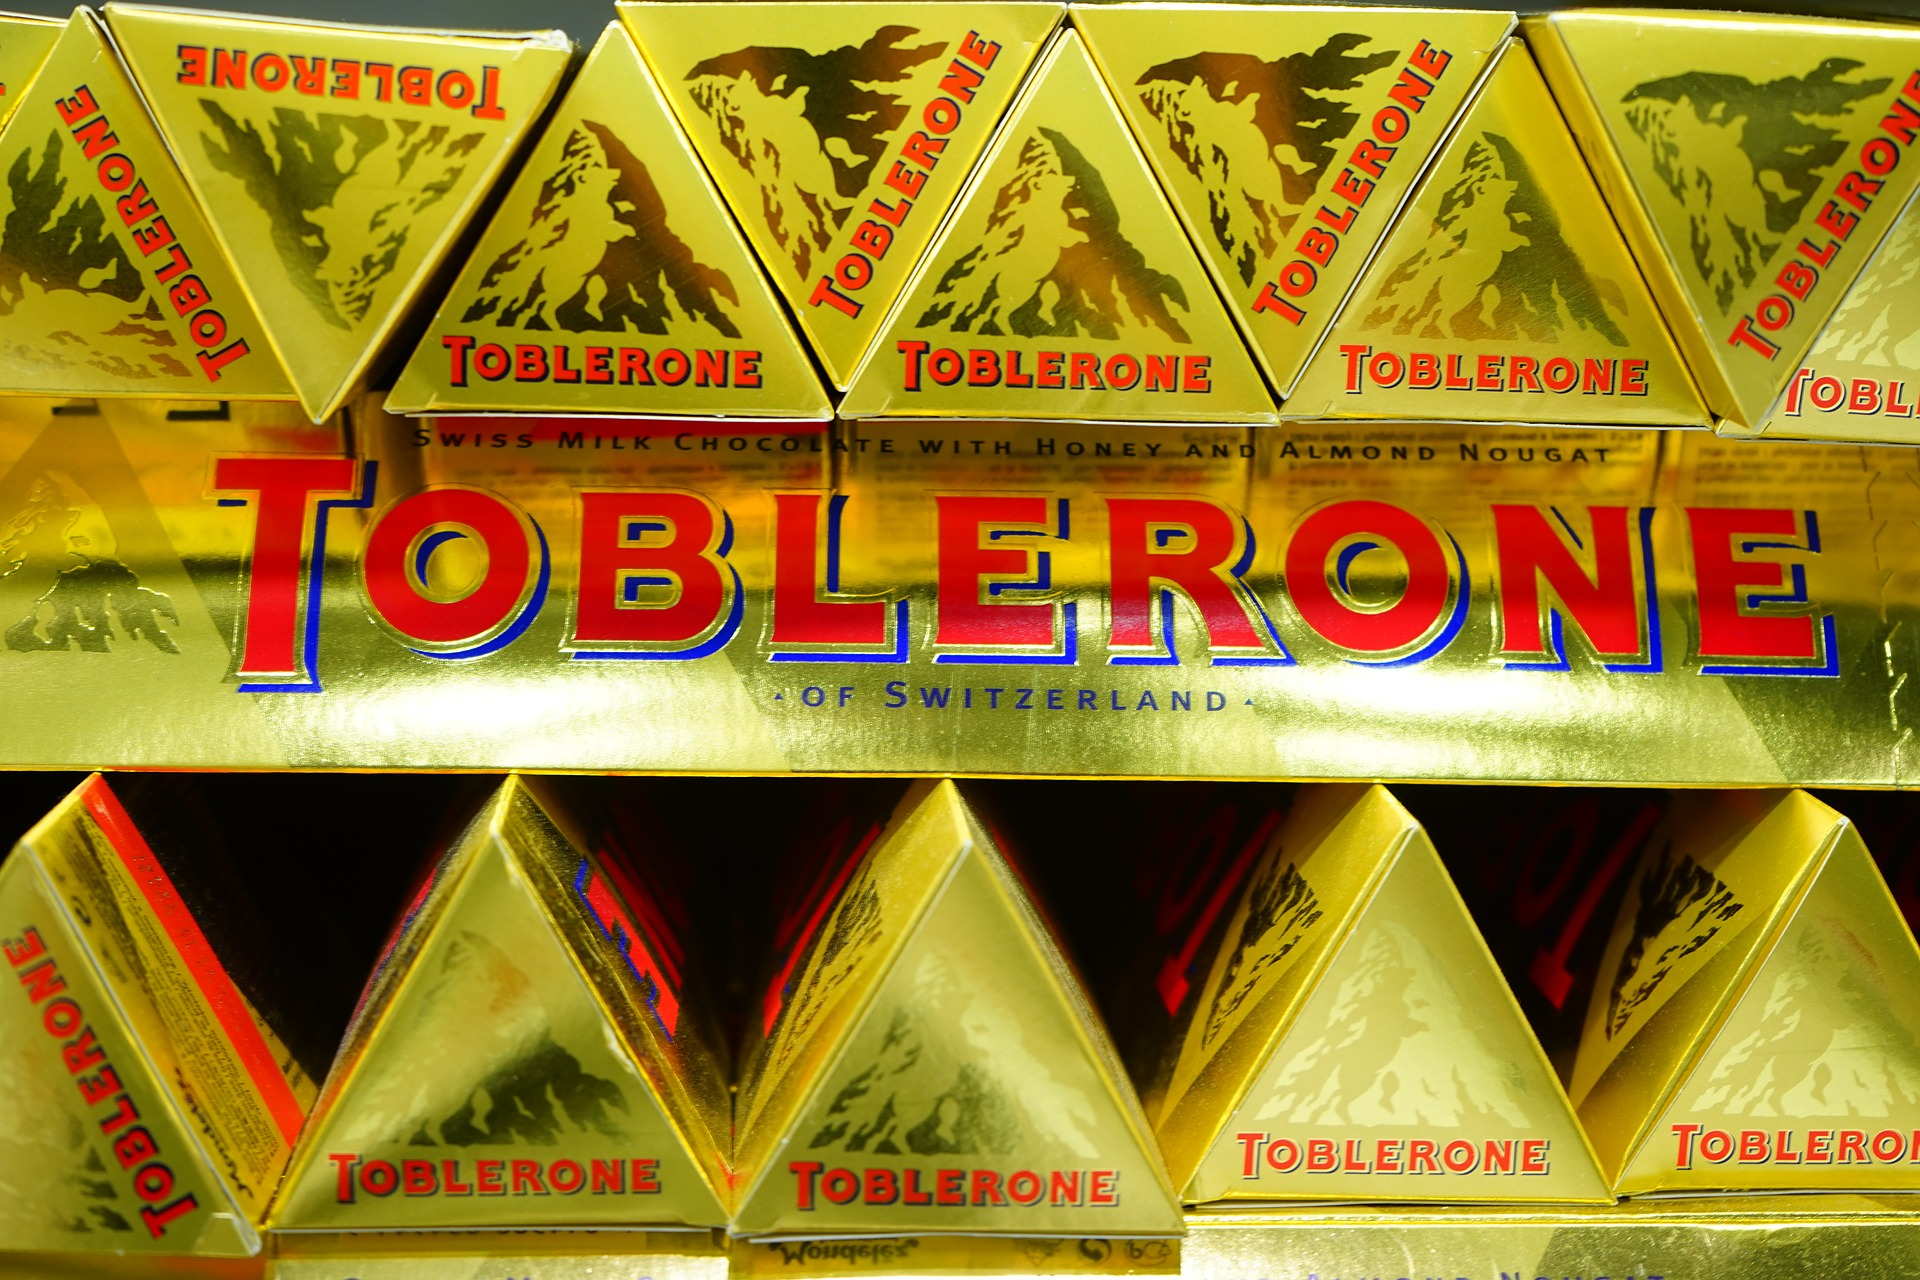 Change in Toblerone's Shape Could Mean Loss of Iconic Trade Mark